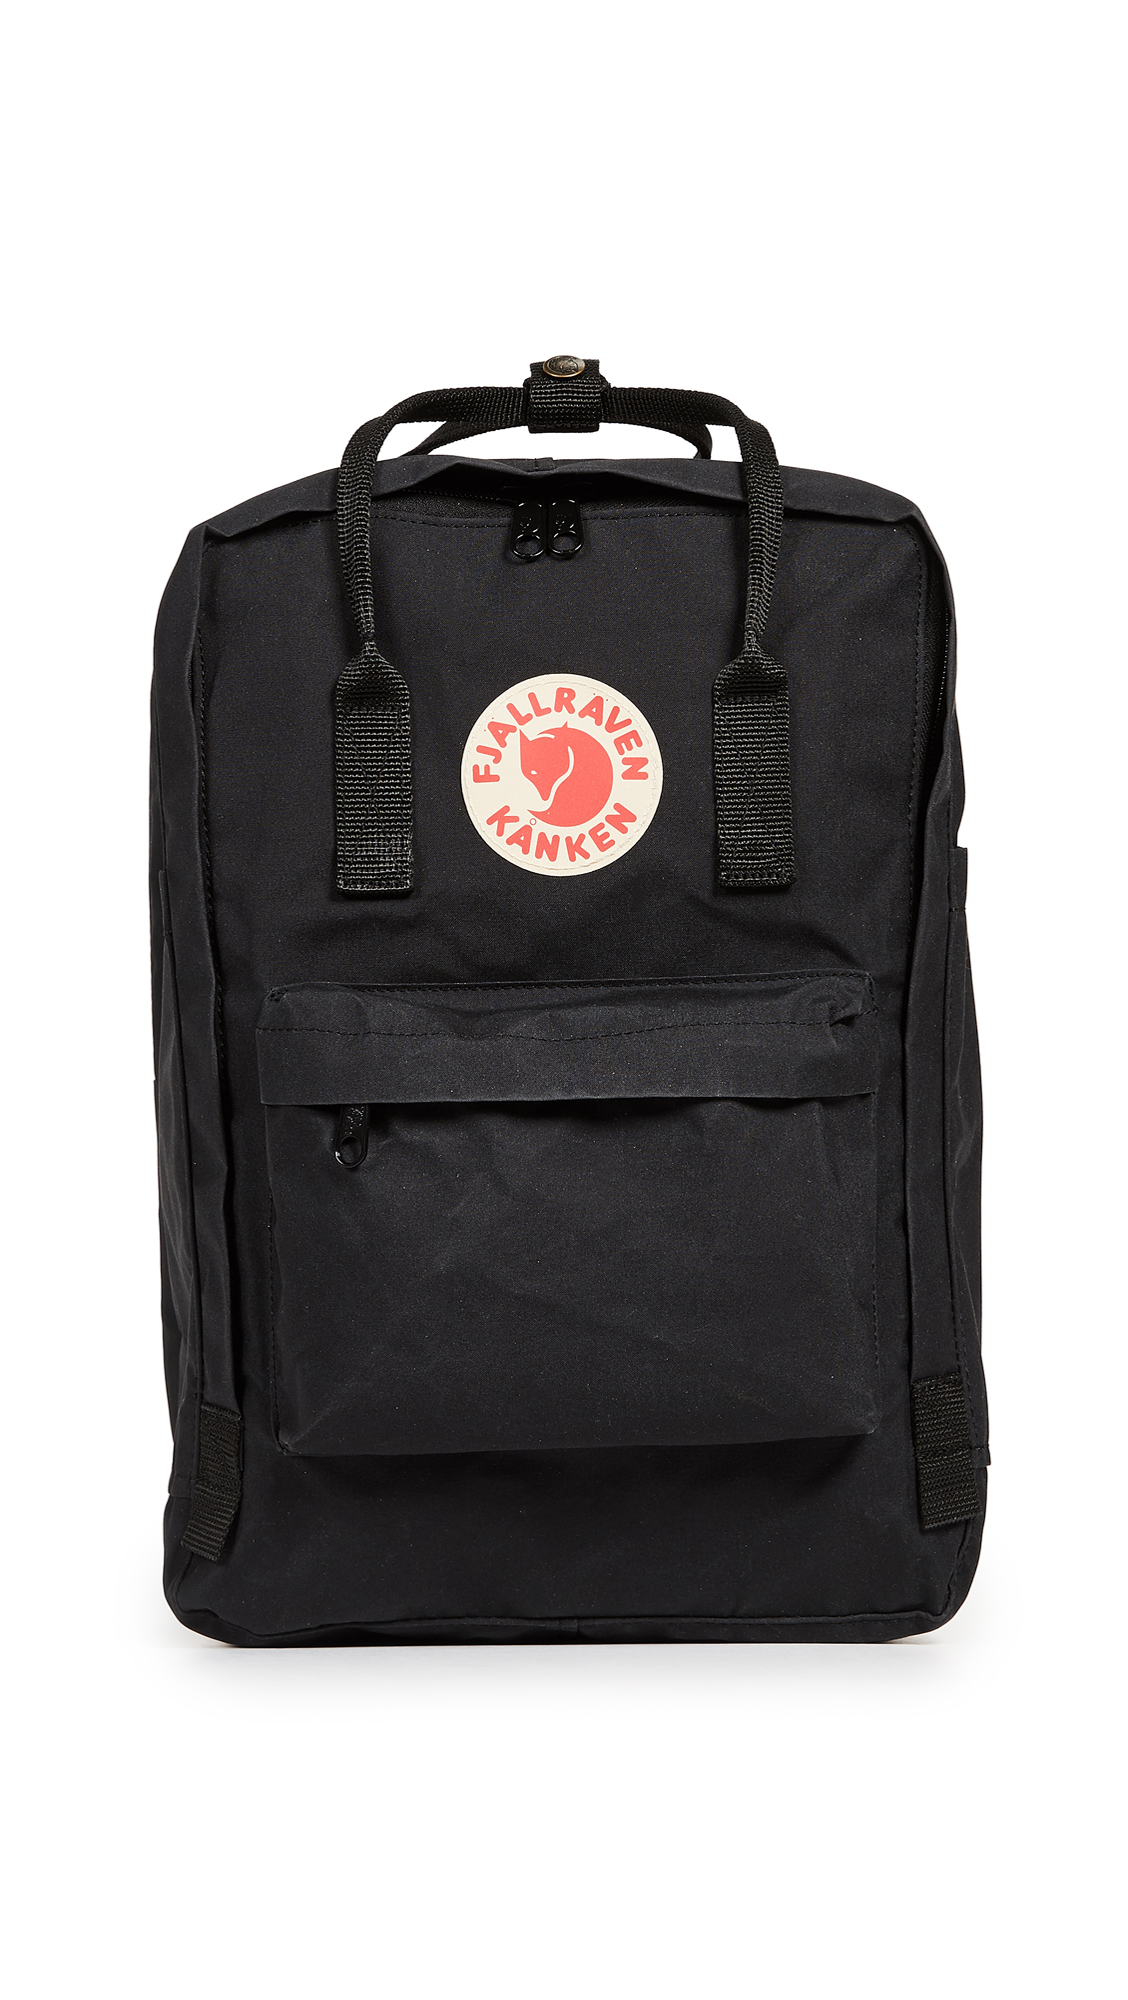 "FJALL RAVEN Kanken 15 Laptop Bag"" in Black"